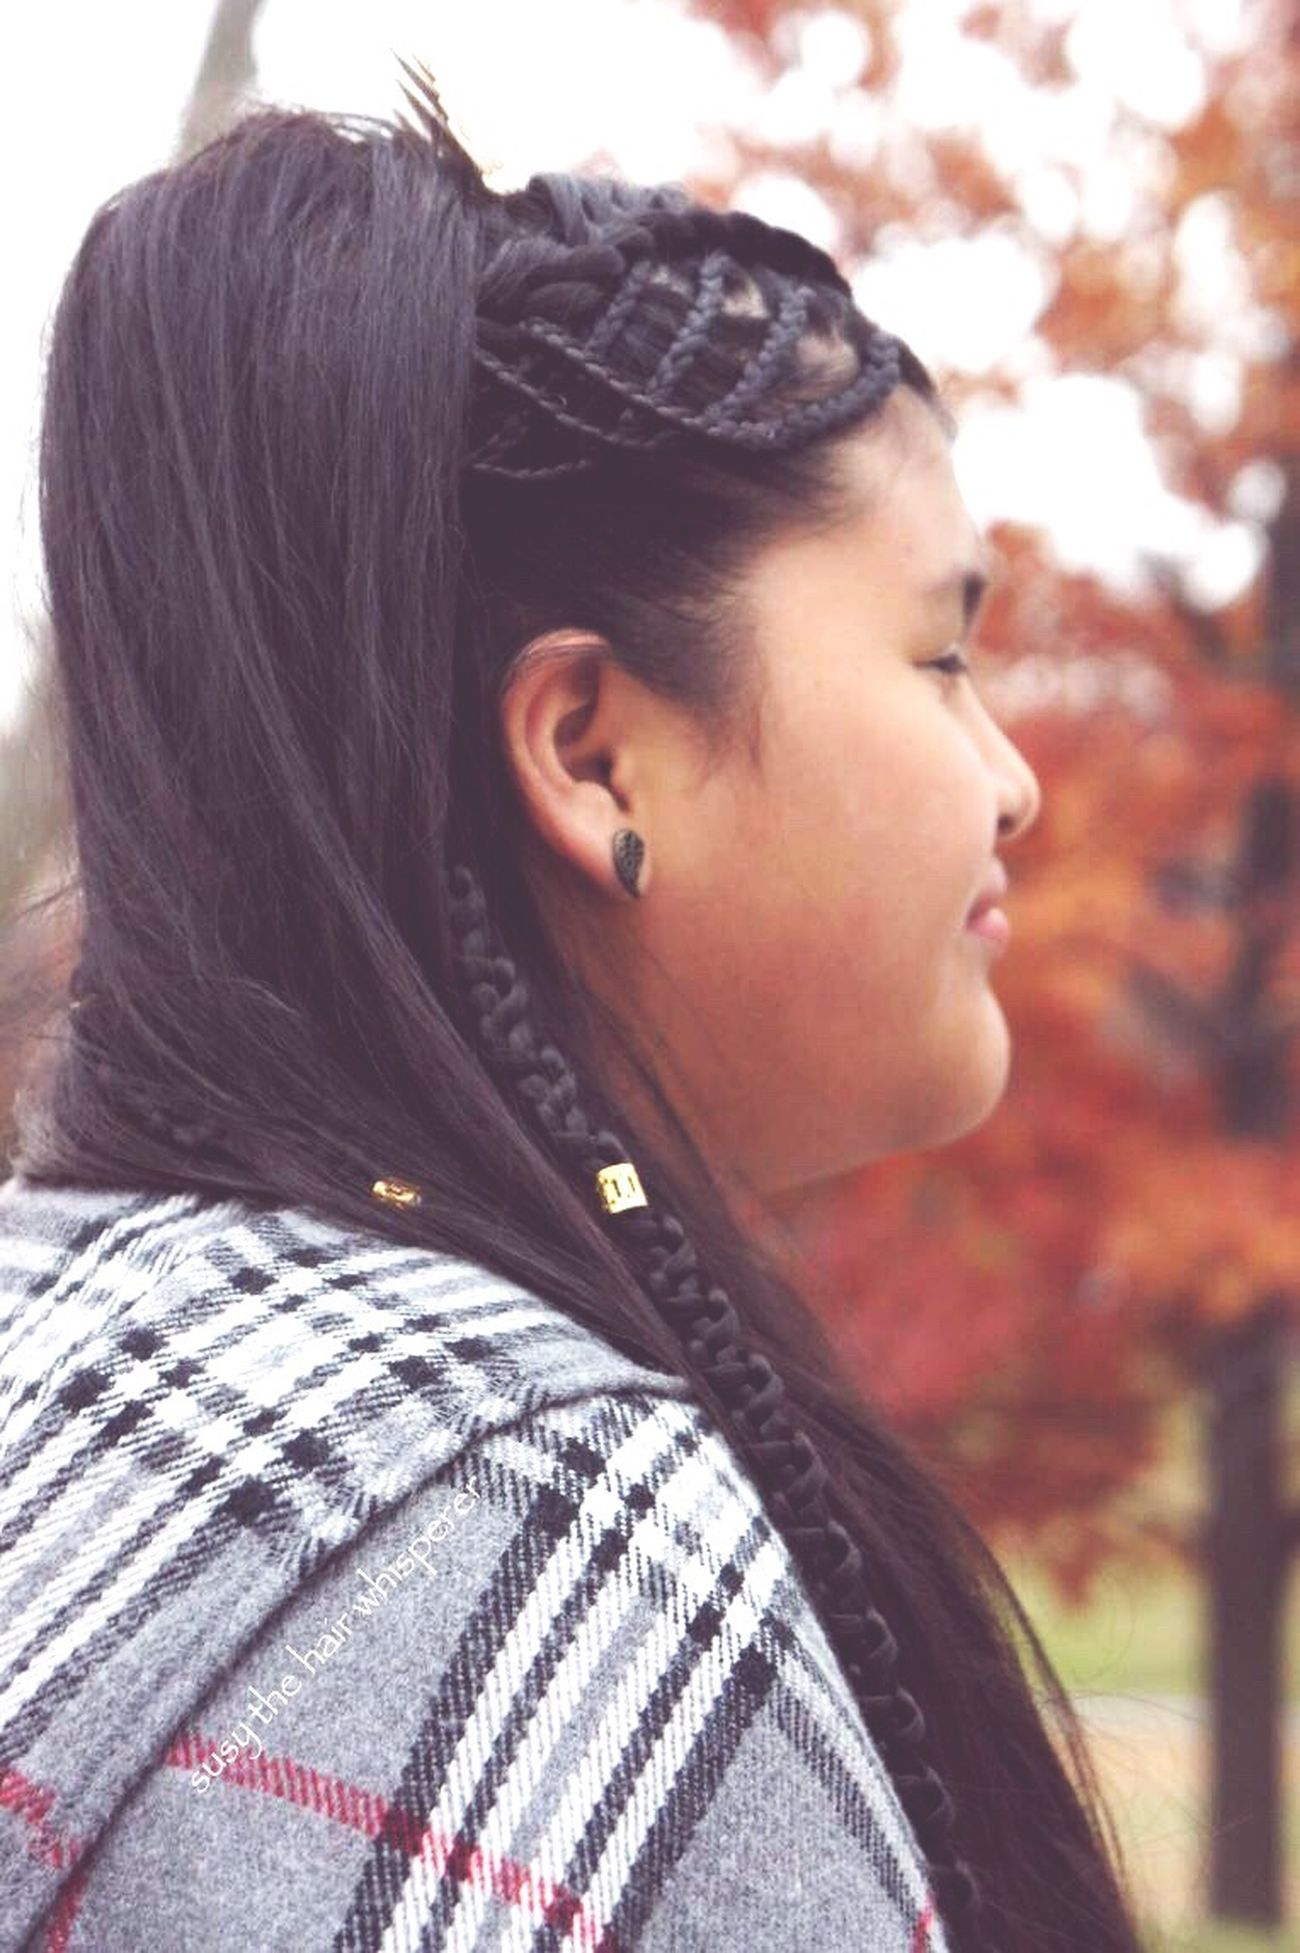 Fall Fall Beauty Headshot Looking Over Shoulder Outdoors Hair Hairstyle Braids Braided Hair Long Hair Holiday